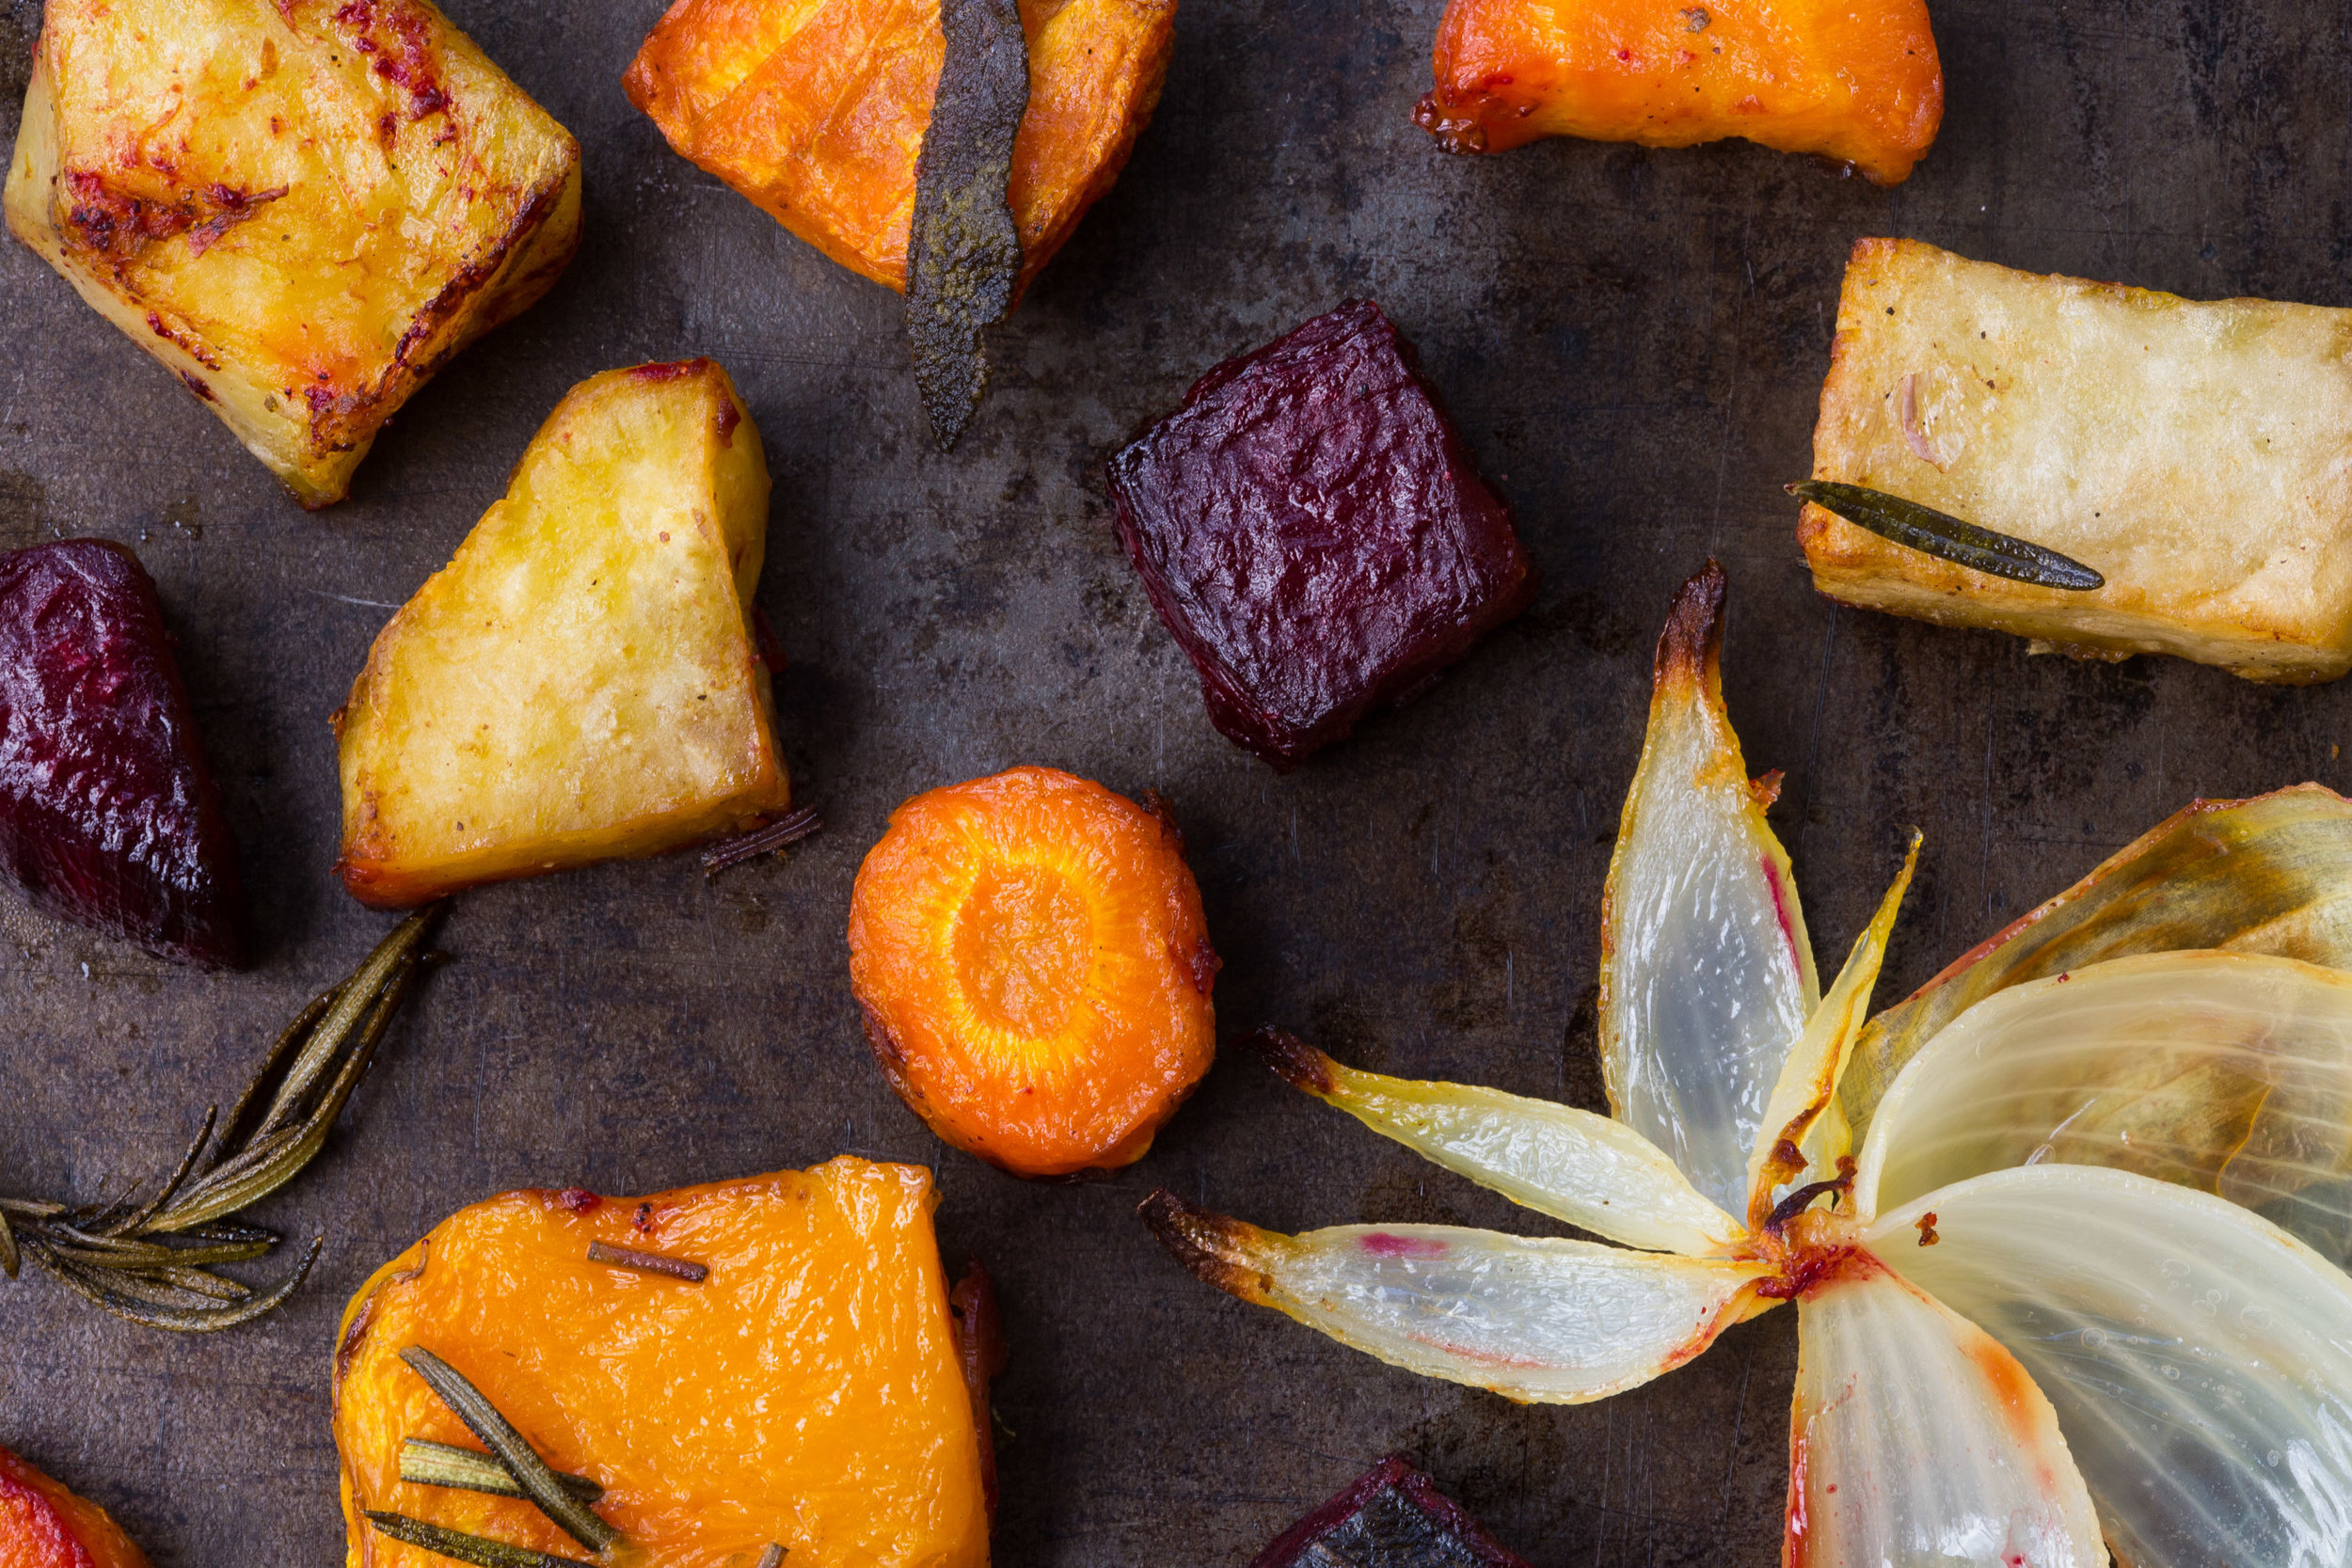 roasted vegetable food commercial photographer wairarapa.jpg